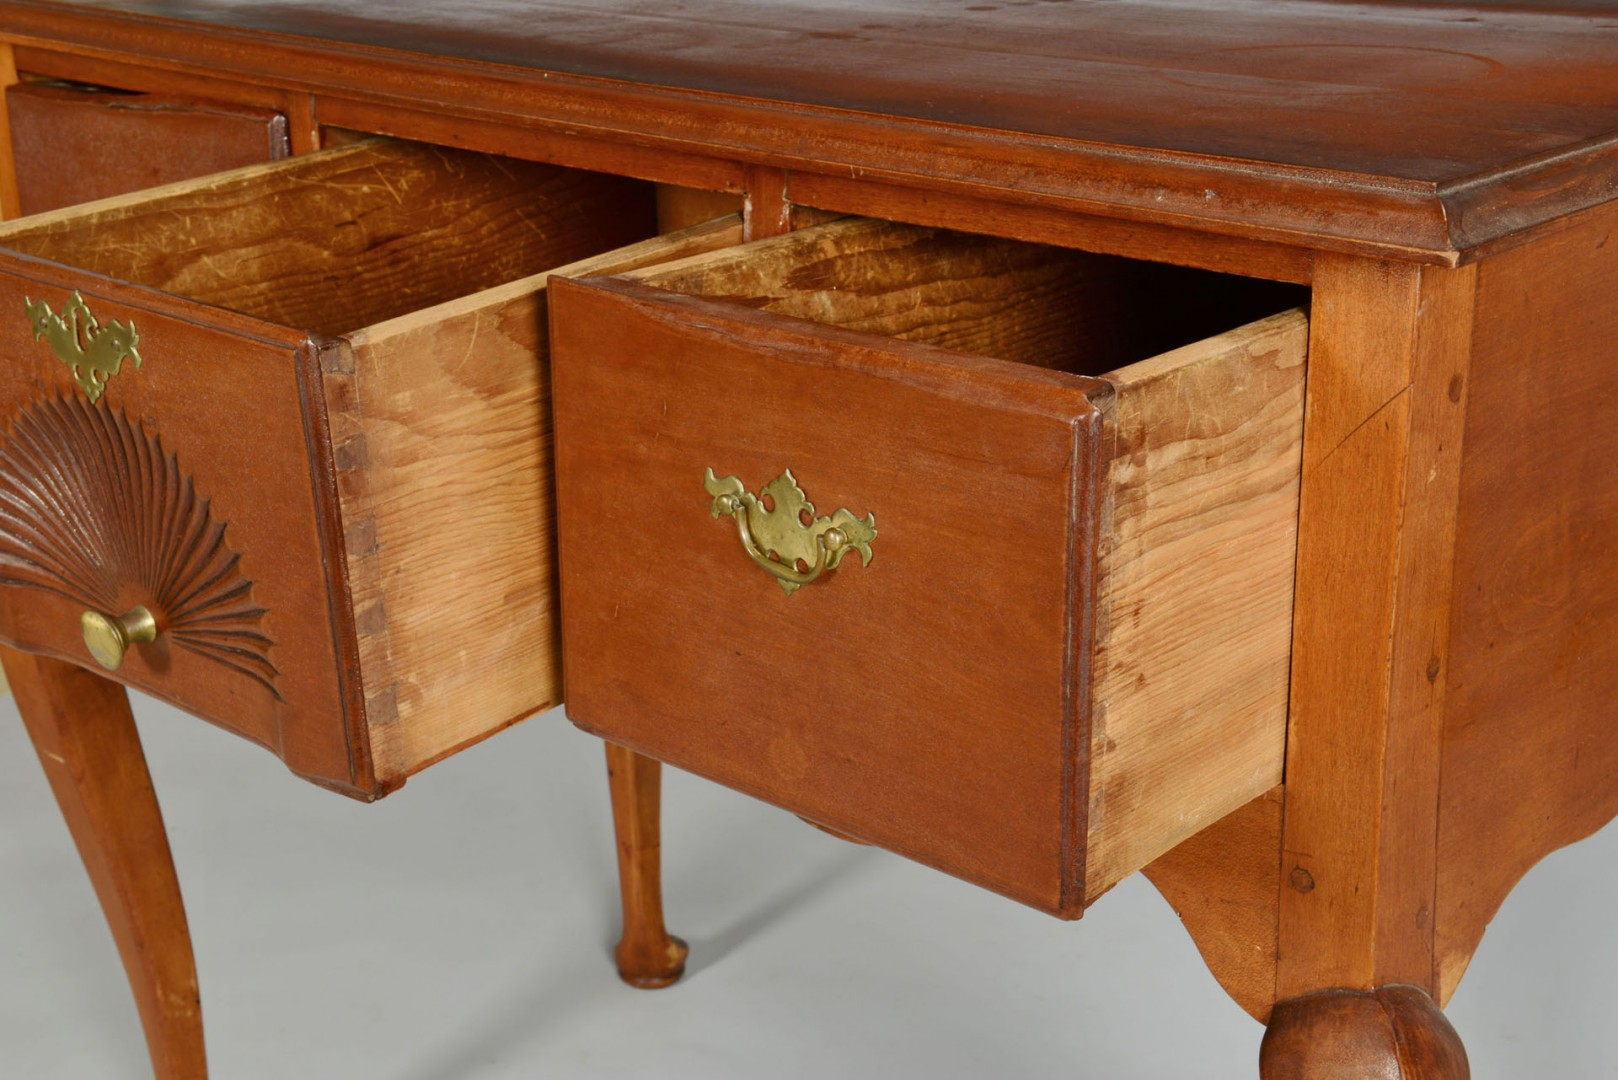 Lot 340: 18th century cherry lowboy or dressing table